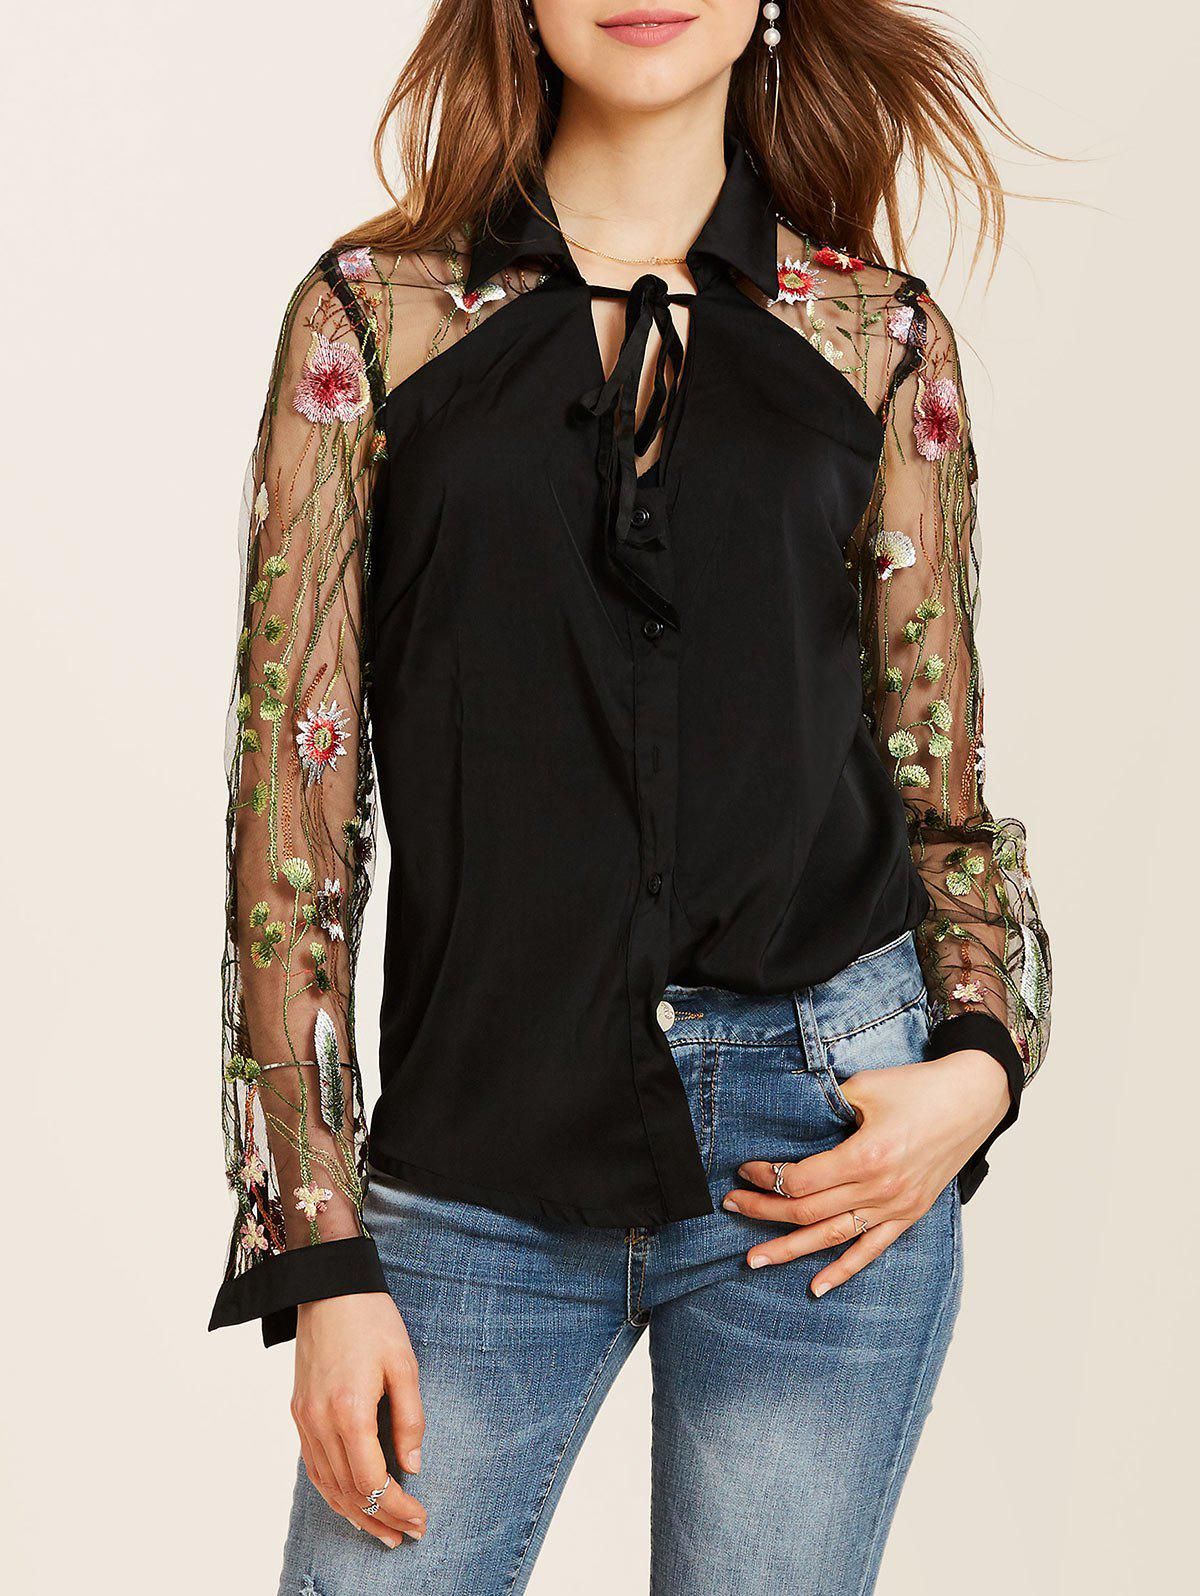 Buy Flower Embroidered Lace Insert Long Sleeve Shirt